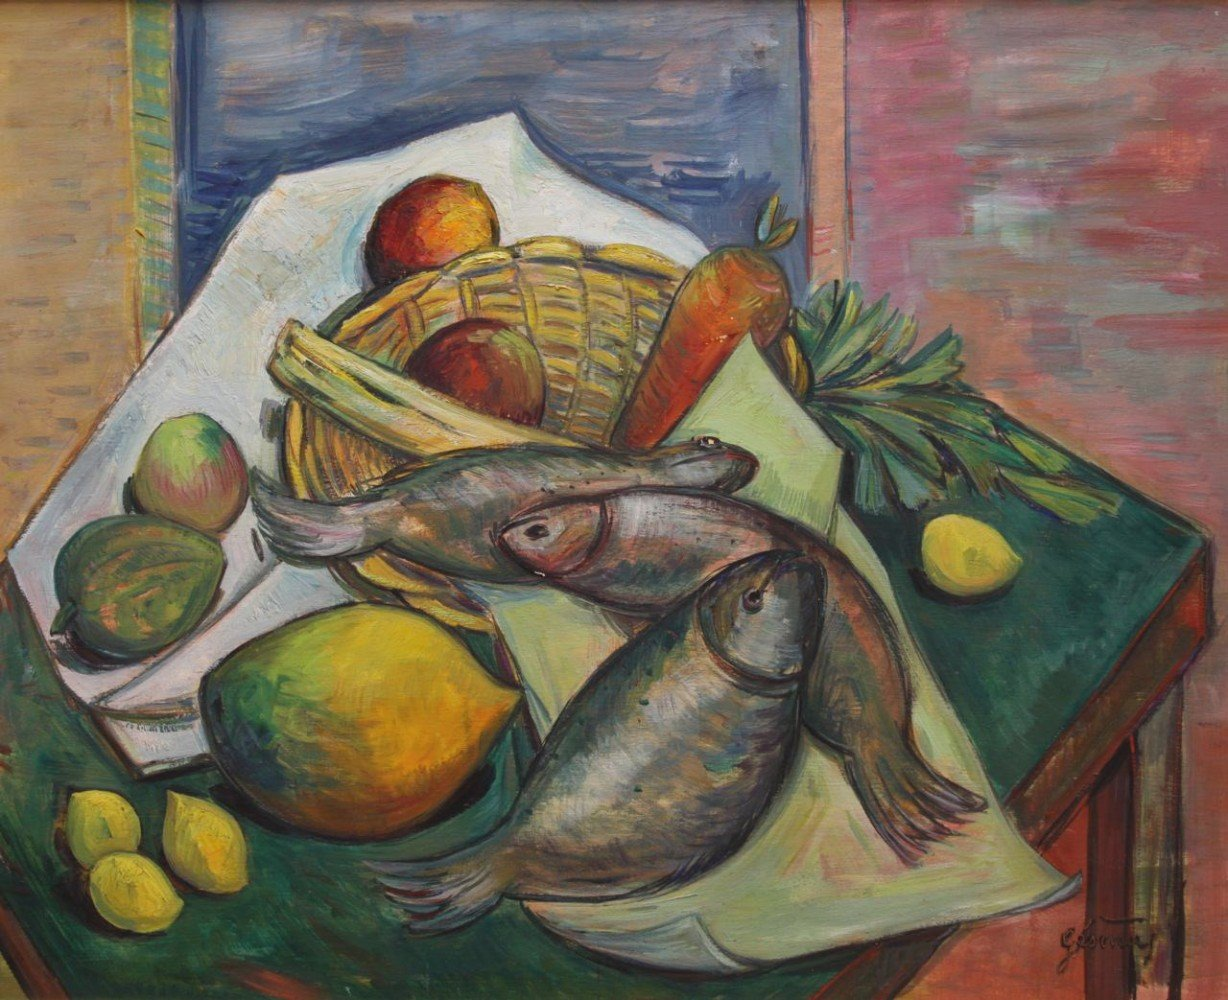 Still Life with Fish, Fruit and Vegetables